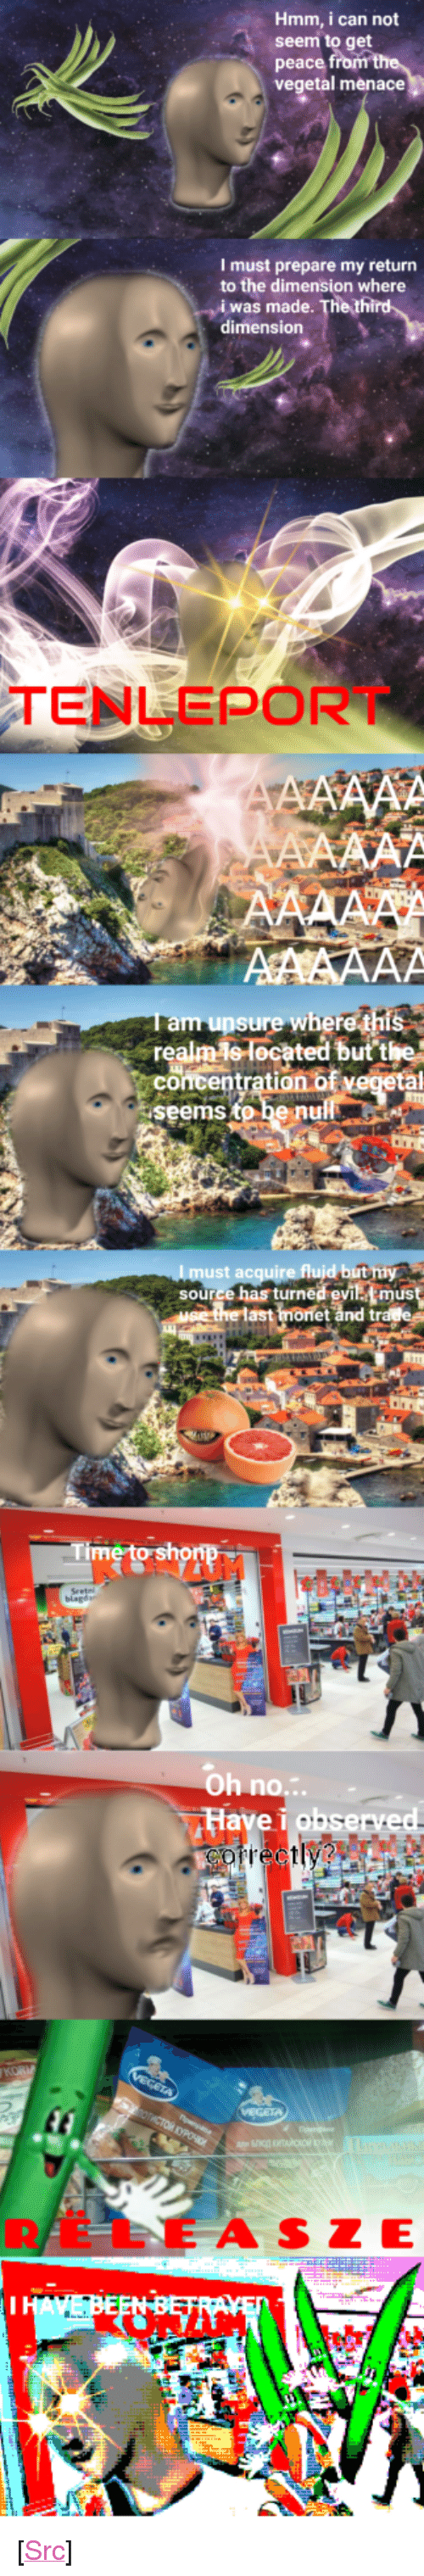 """Vegetal: Hmm, i can not  seem to get  peace  vegetal menace  I must prepare my return  to the dimension where  i was made  dimension  TENLEPORT  m unsure wheret  concentration bf  ocated butt  seems 、beinu  ust  source has turned evi must  monet and tr  Oh no.:.  Have i hsered  RELE A SZE <p>[<a href=""""https://www.reddit.com/r/surrealmemes/comments/7j1xgo/c_r_o_n_d_i_m_e_n_t/"""">Src</a>]</p>"""